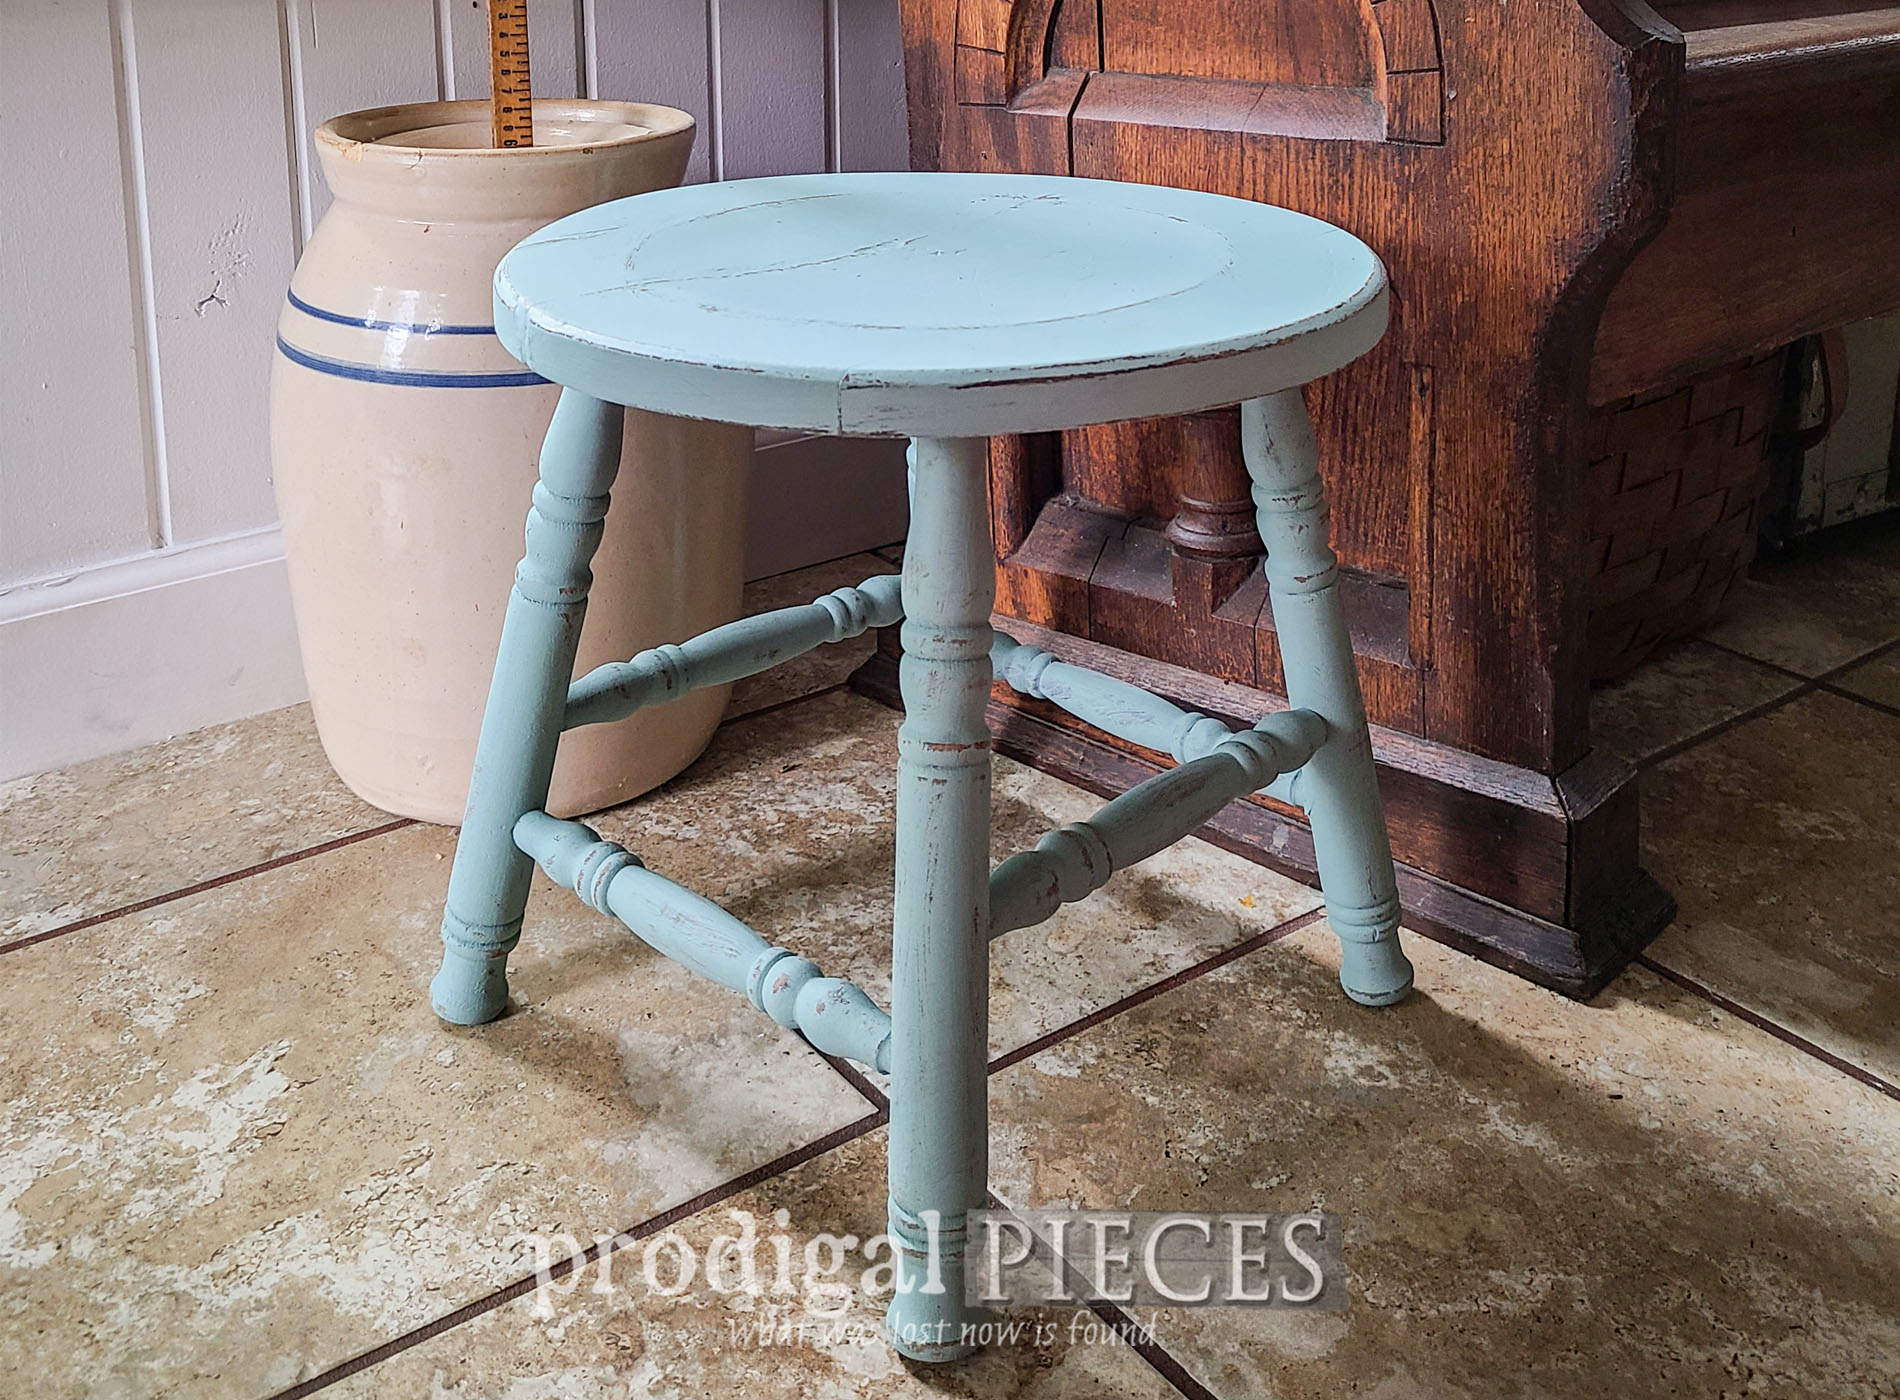 Featured Upcycled Bar Stool into Home Decor by Larissa of Prodigal Pieces | prodigalpieces.com #prodigalpieces #furniture #diy #home